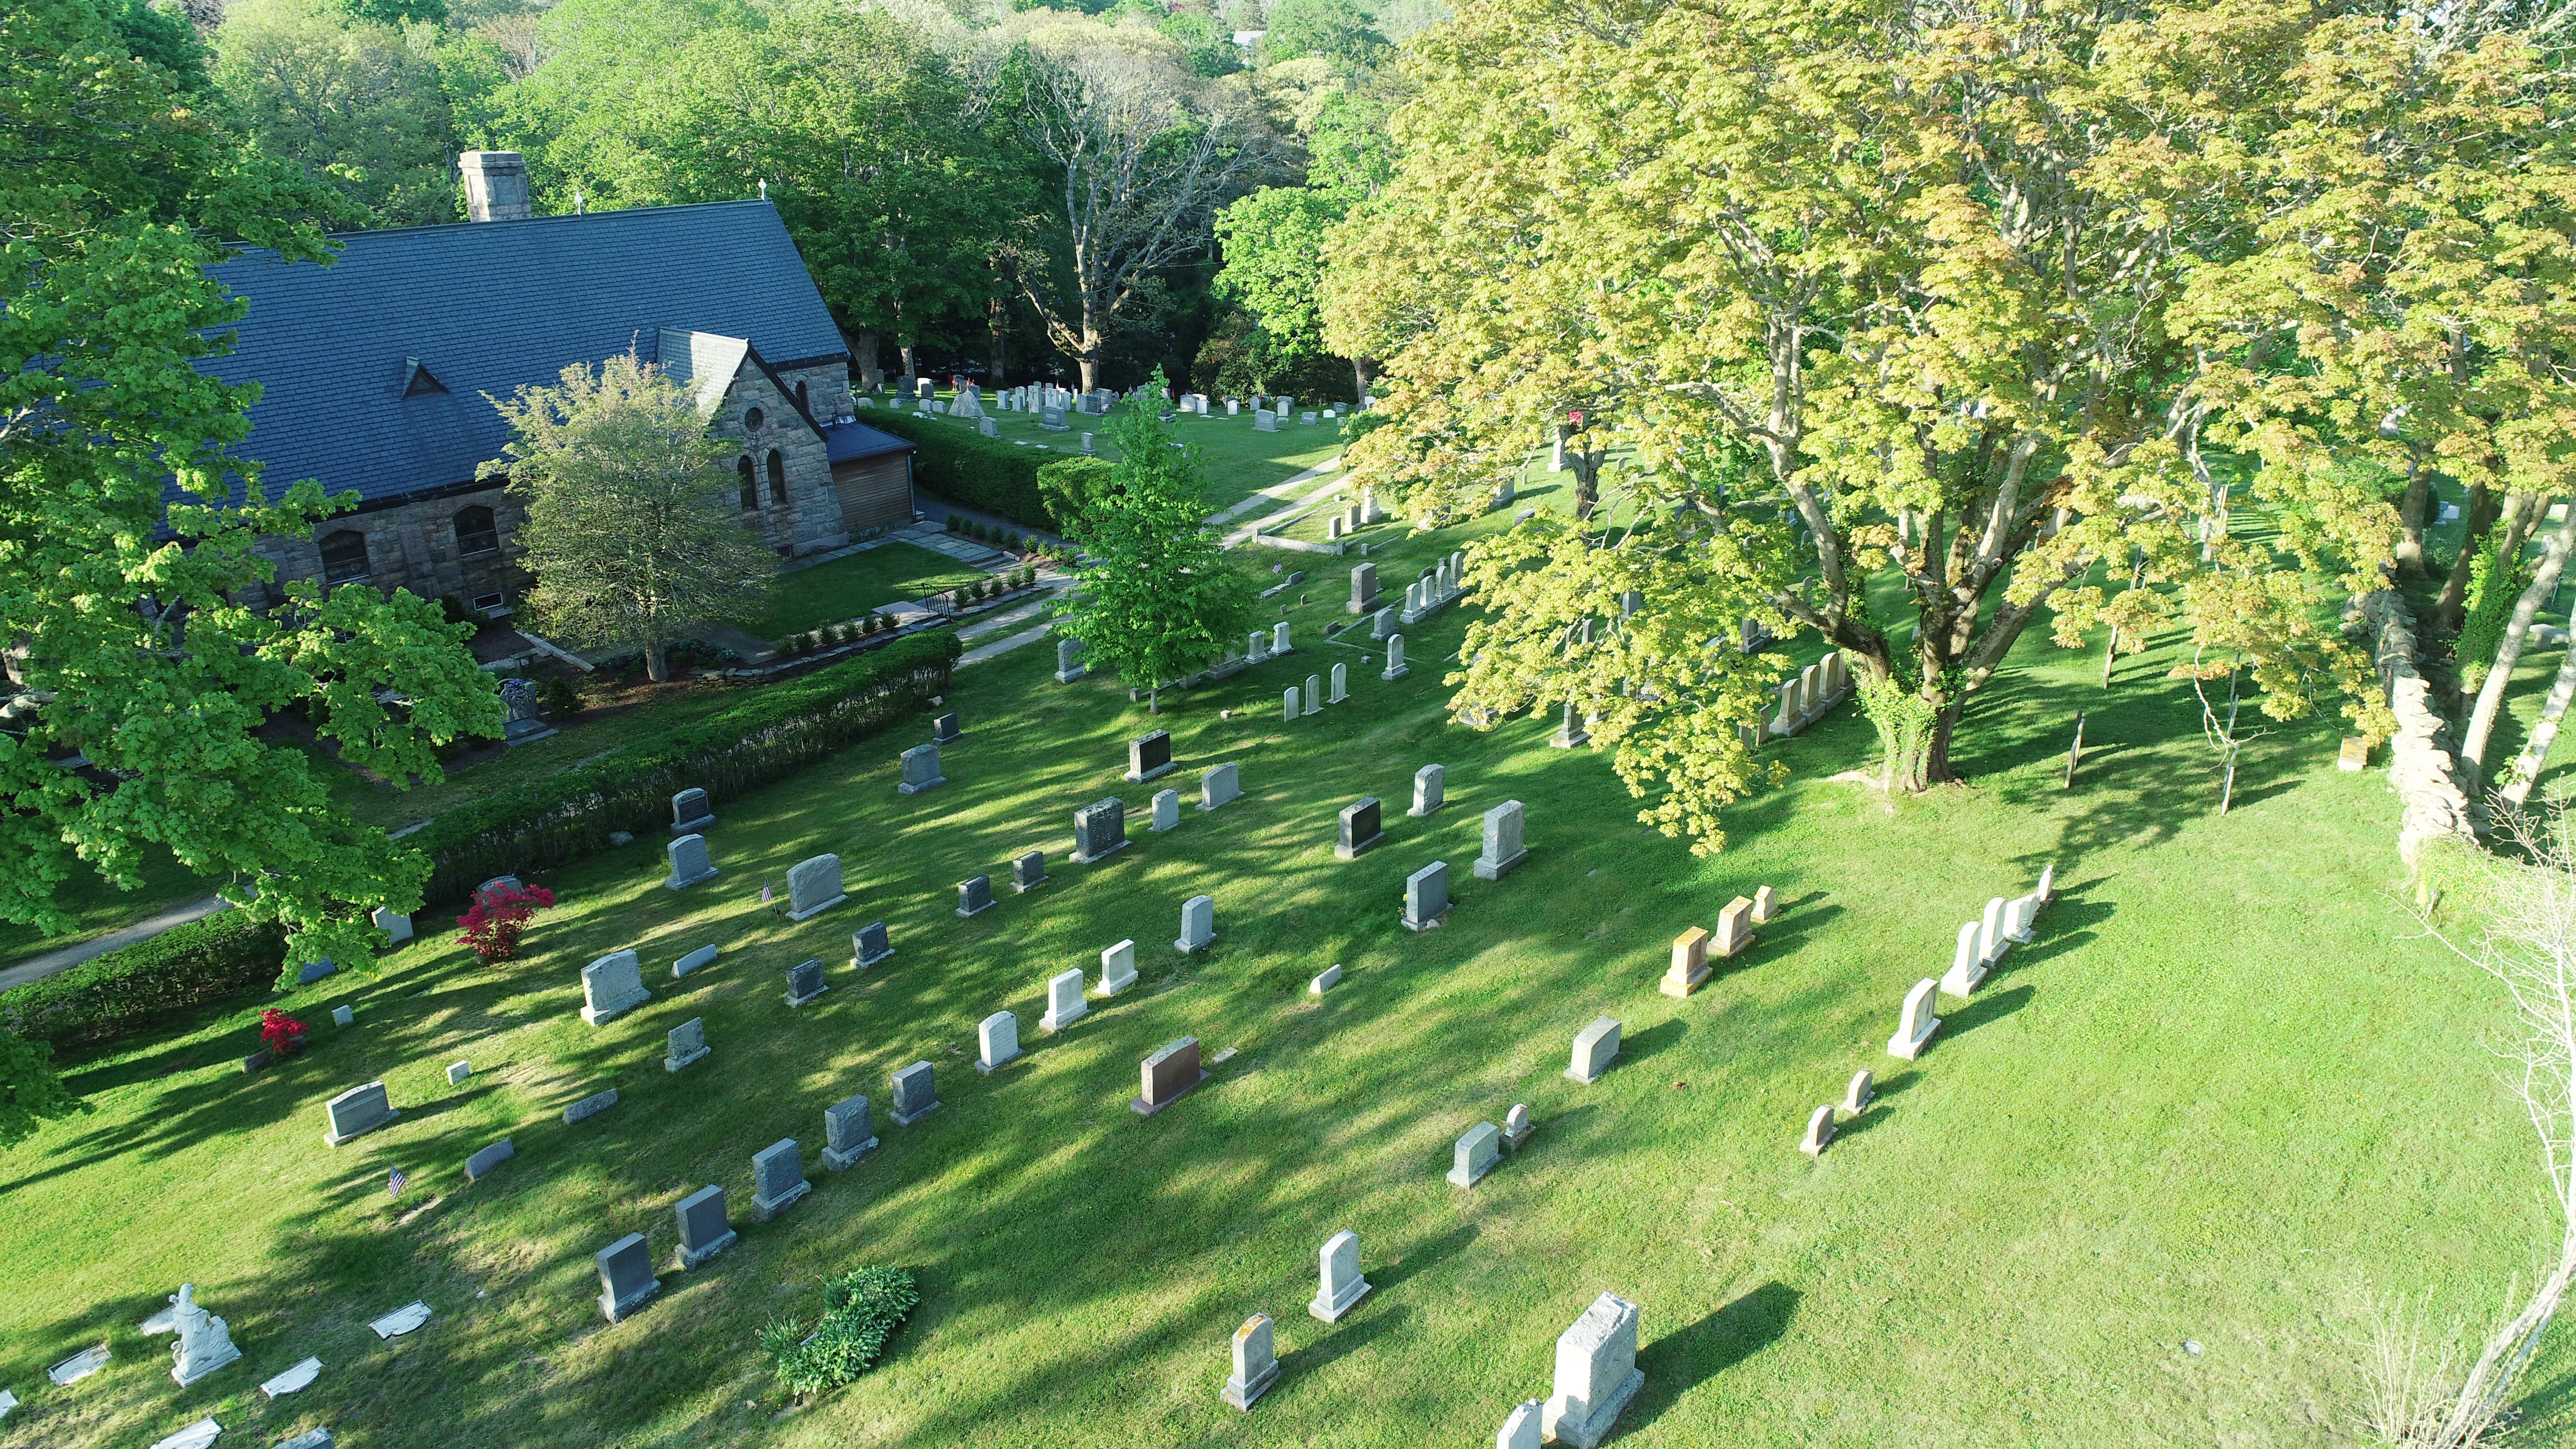 Church of the Messiah cemetery aerial view